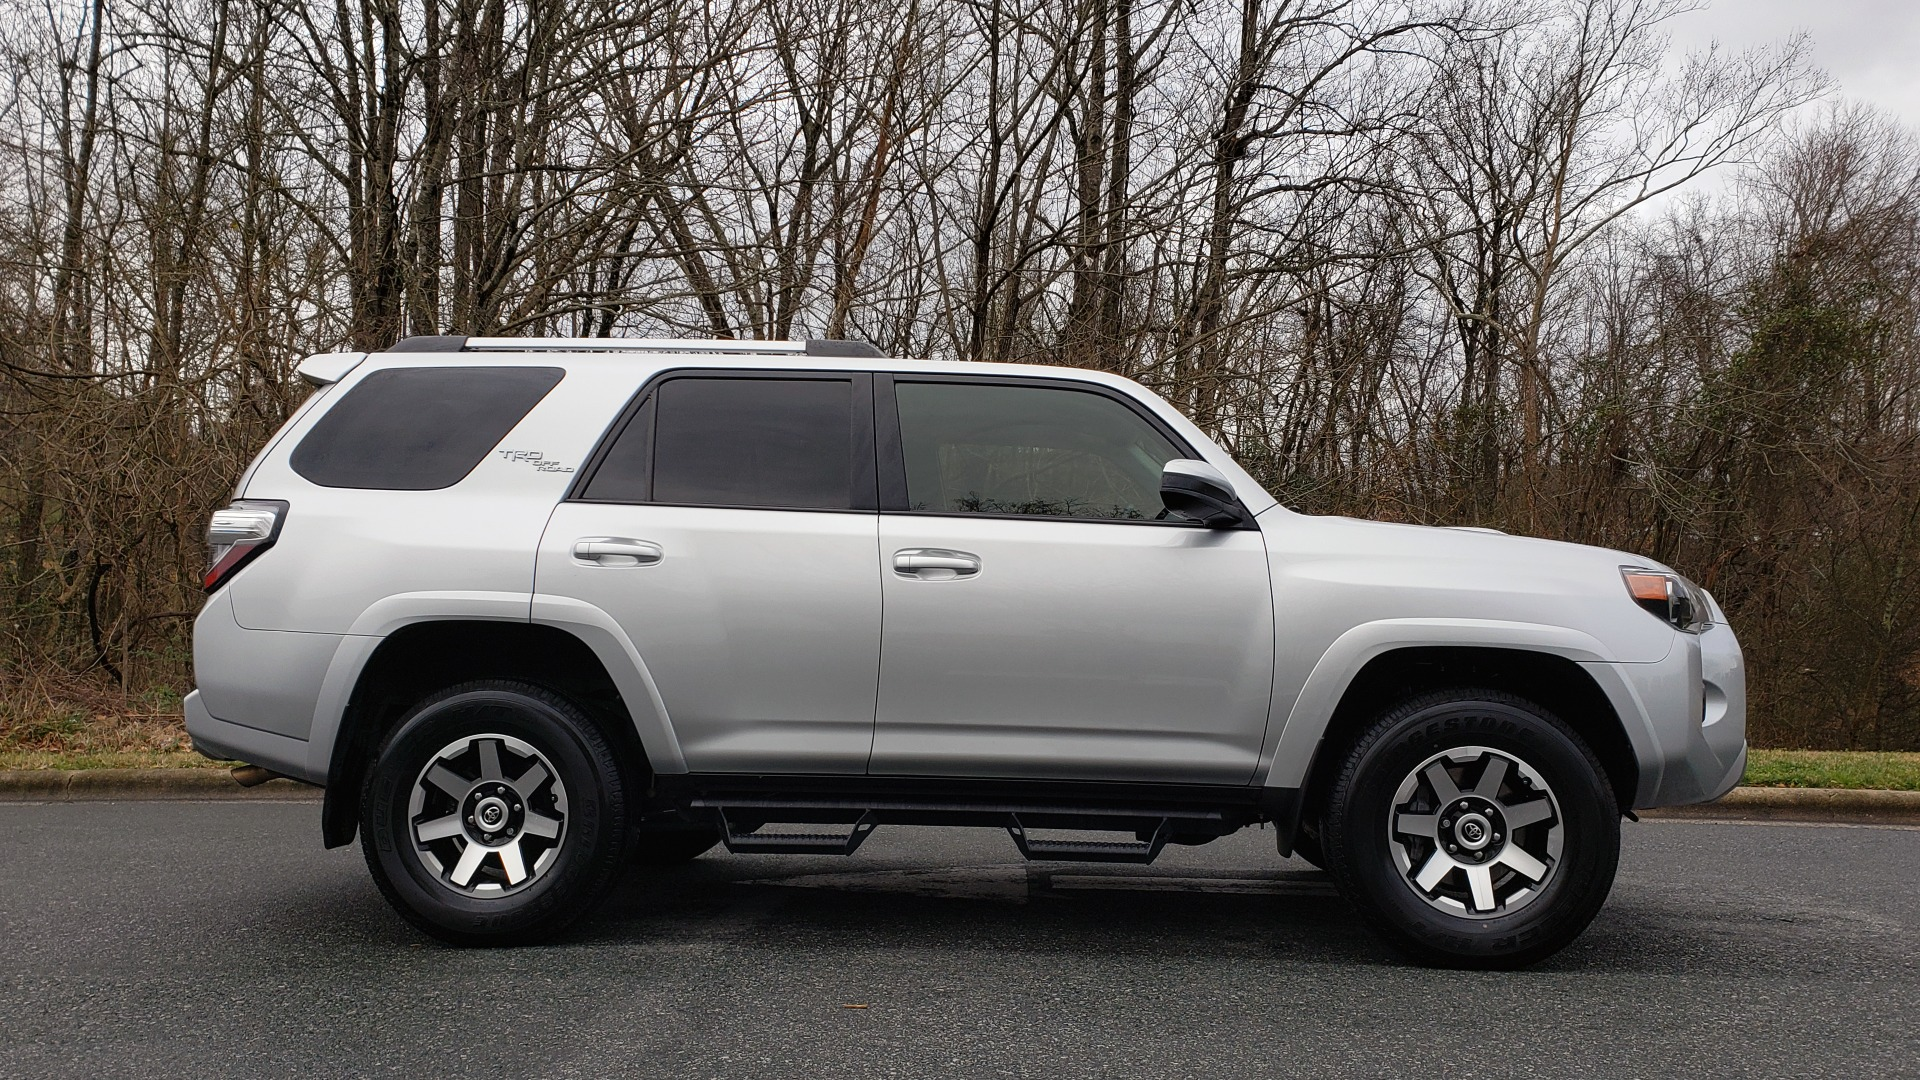 Used 2018 Toyota 4RUNNER TRD OFF-ROAD 4X4 / V6 / AUTO / LEATHER / LOW MILES! for sale Sold at Formula Imports in Charlotte NC 28227 5